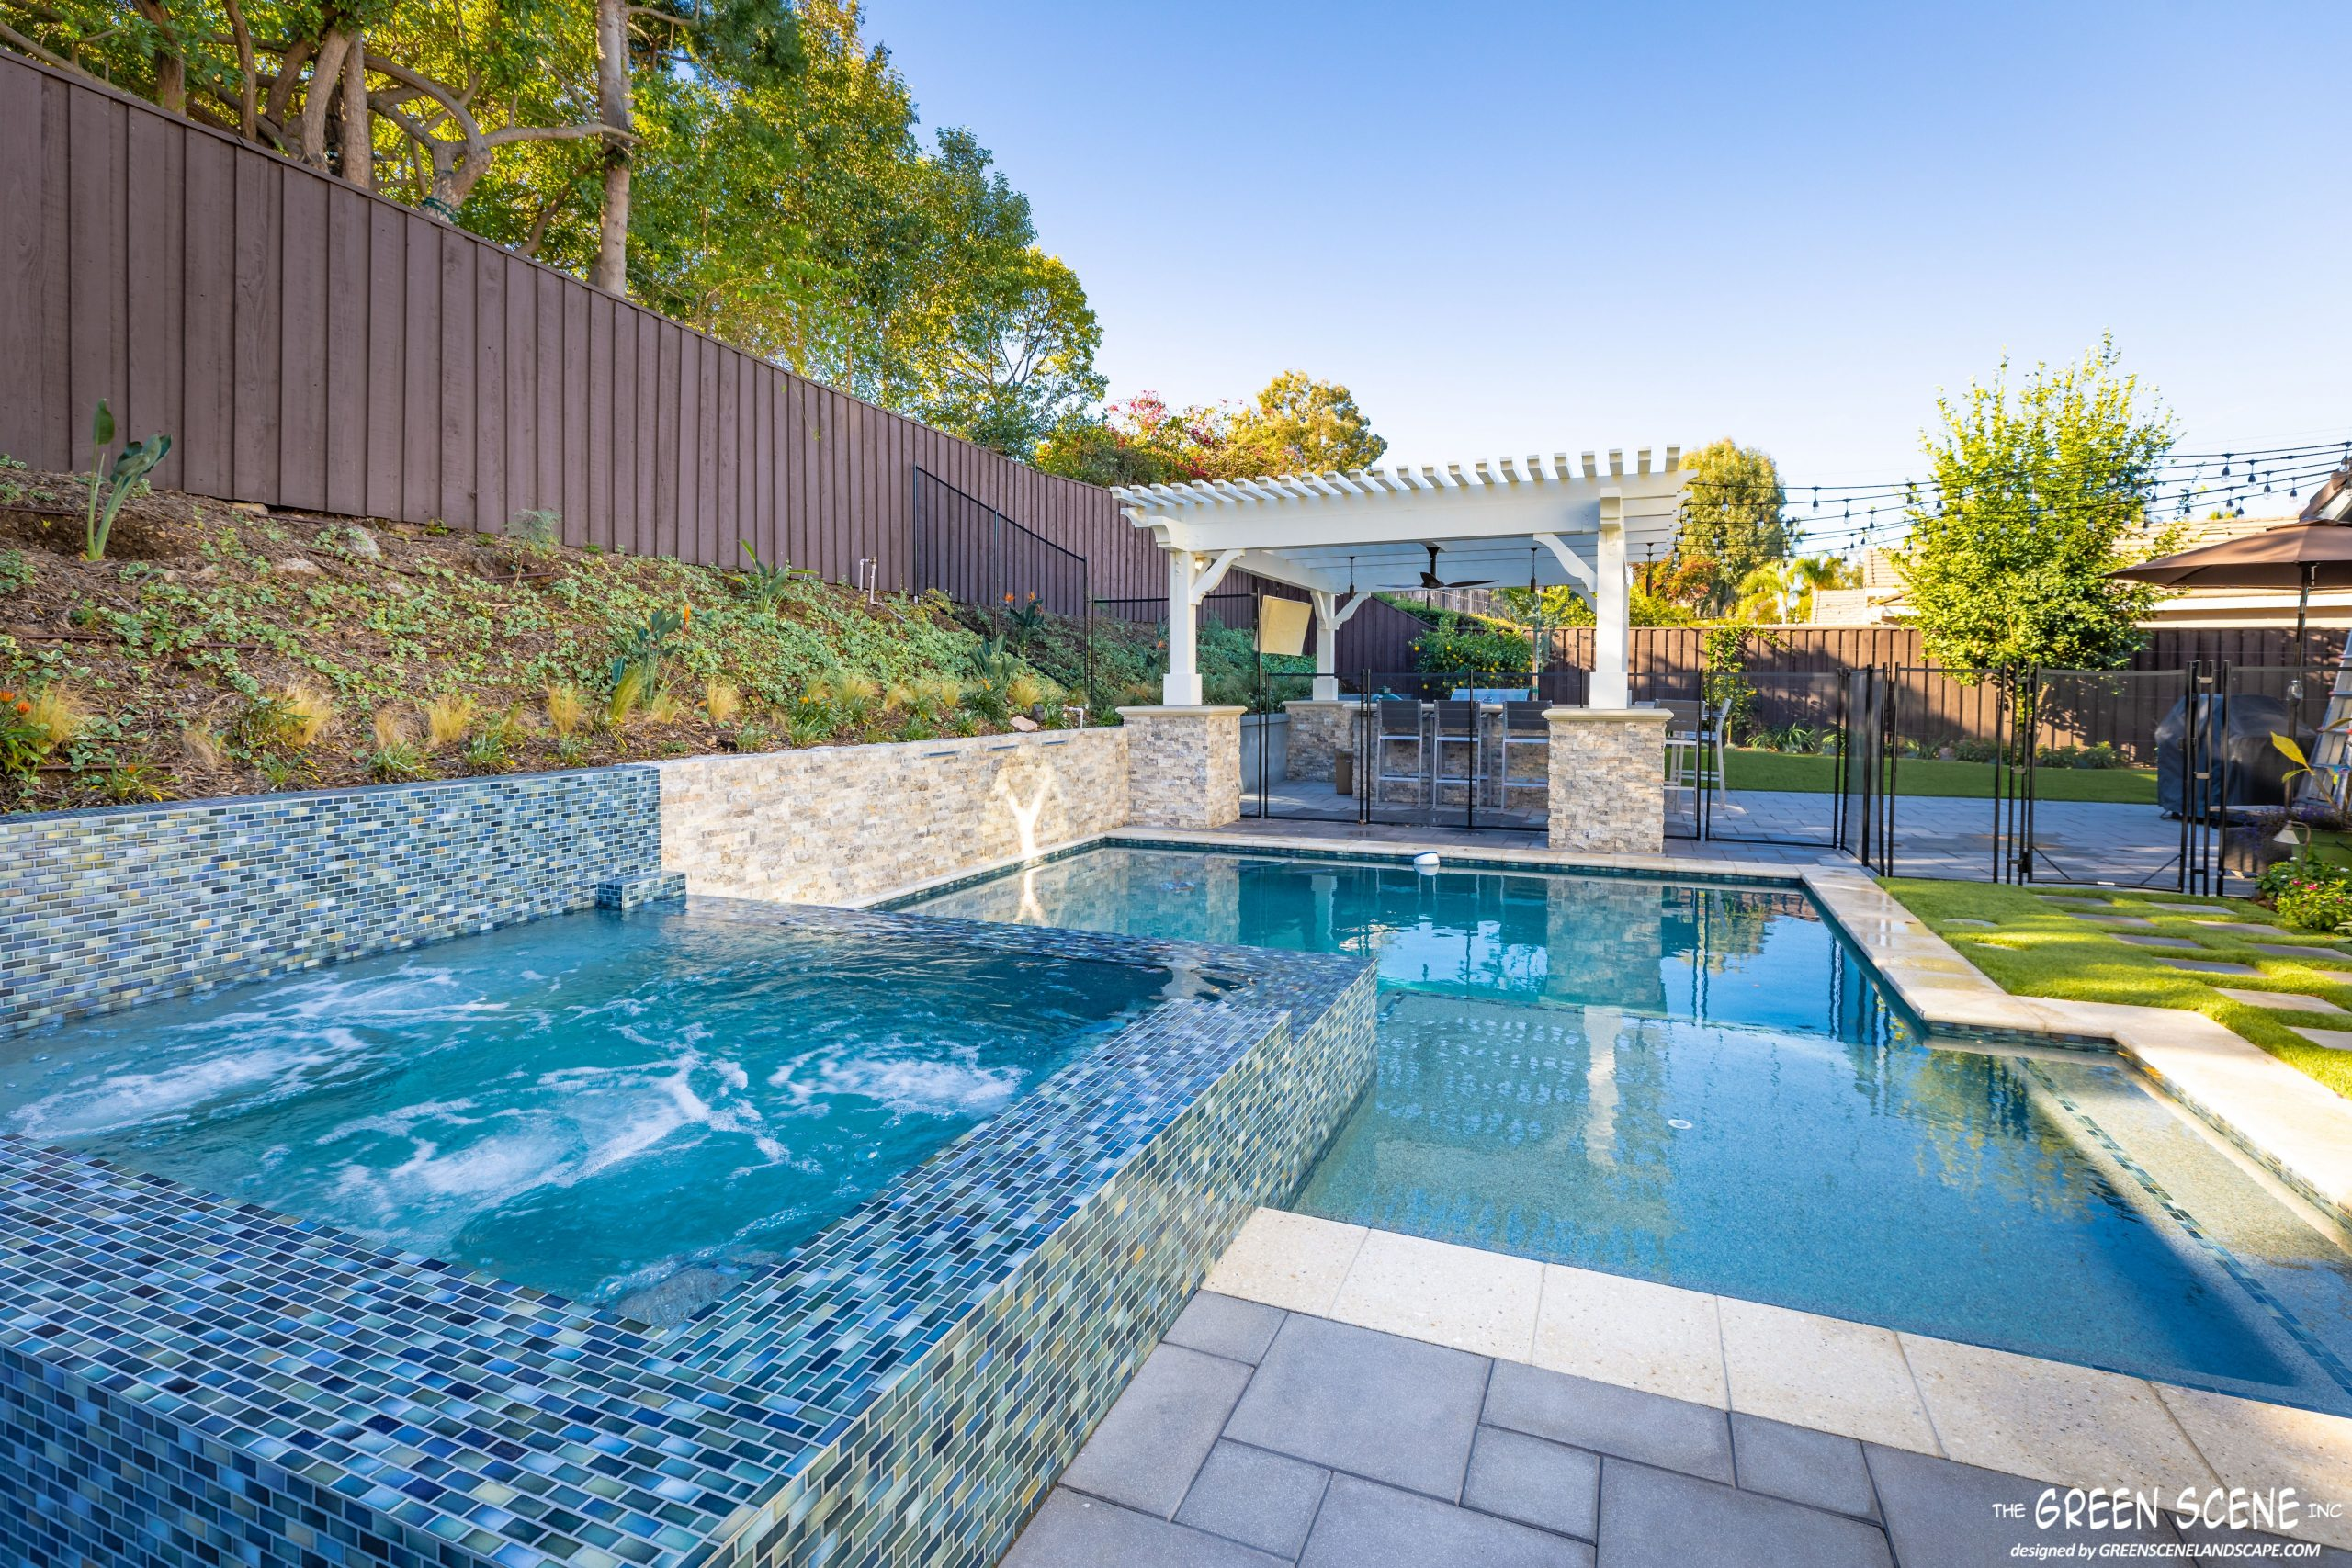 Let the creativity flow with a contemporary design pool